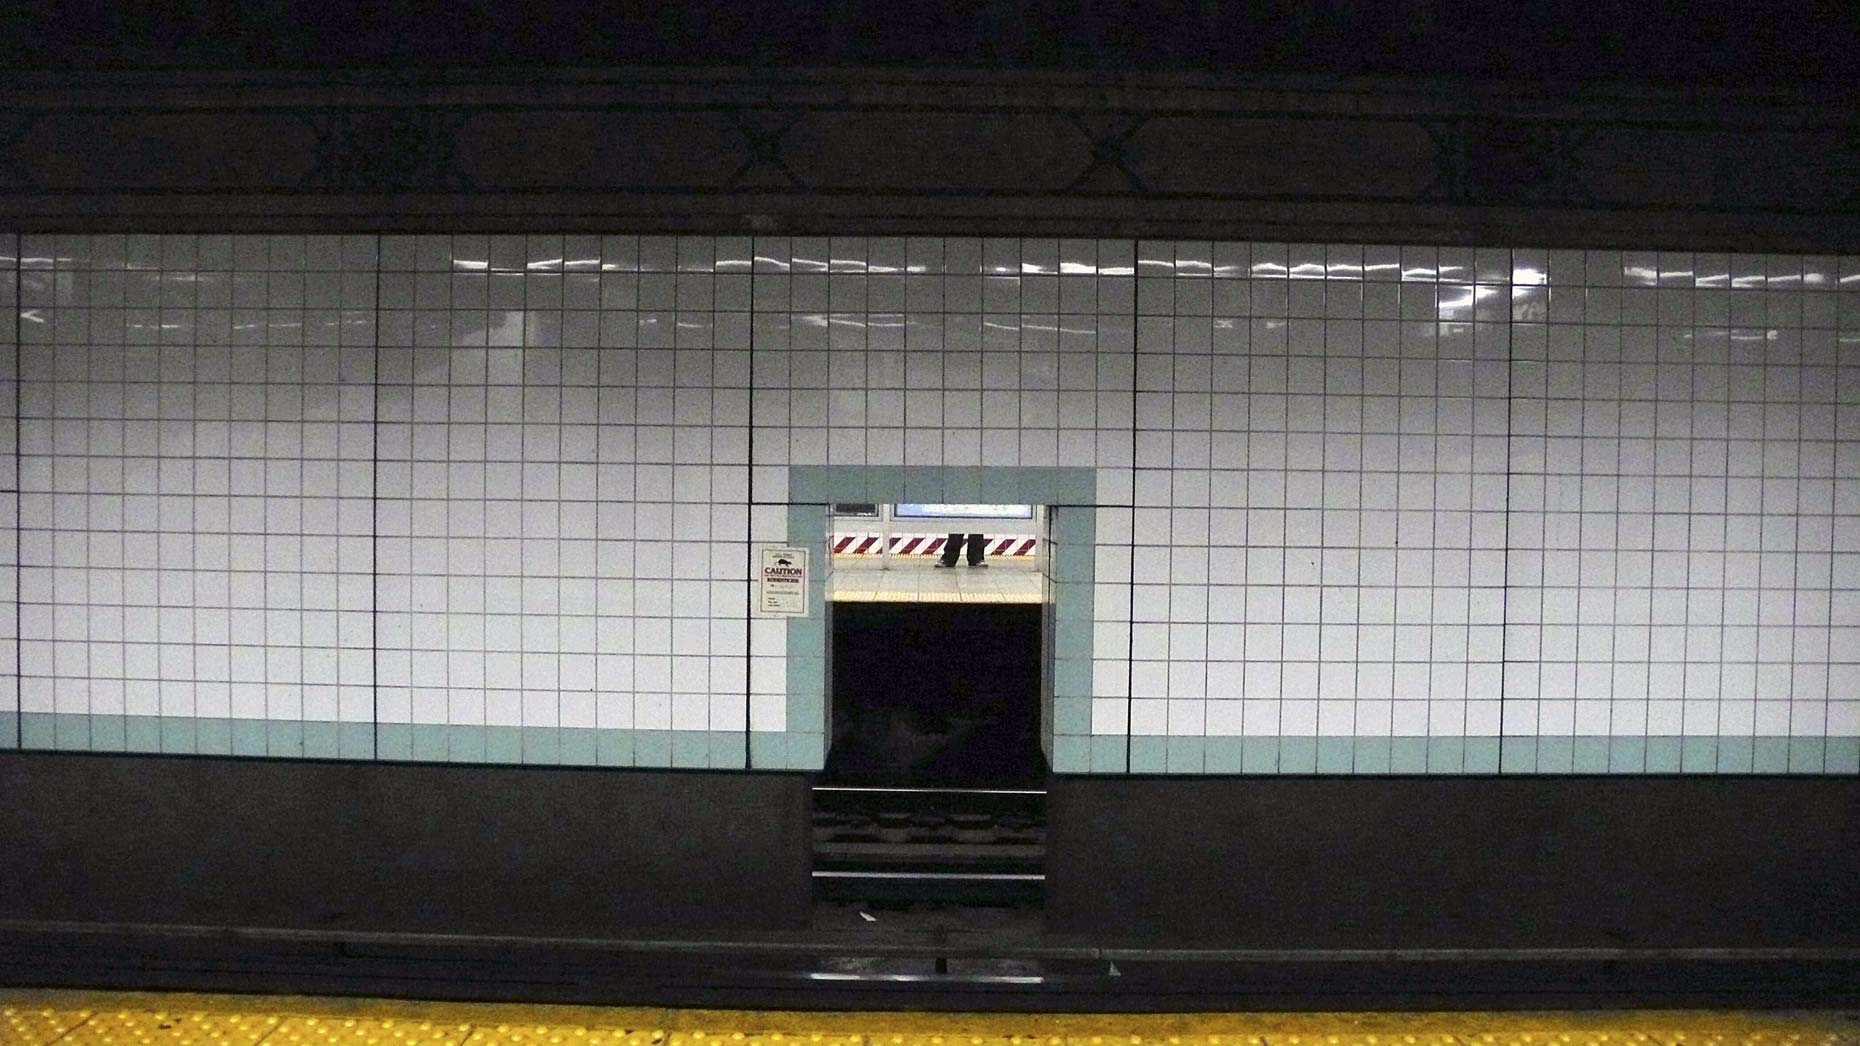 SUBWAY THROUGH THE TRACKS